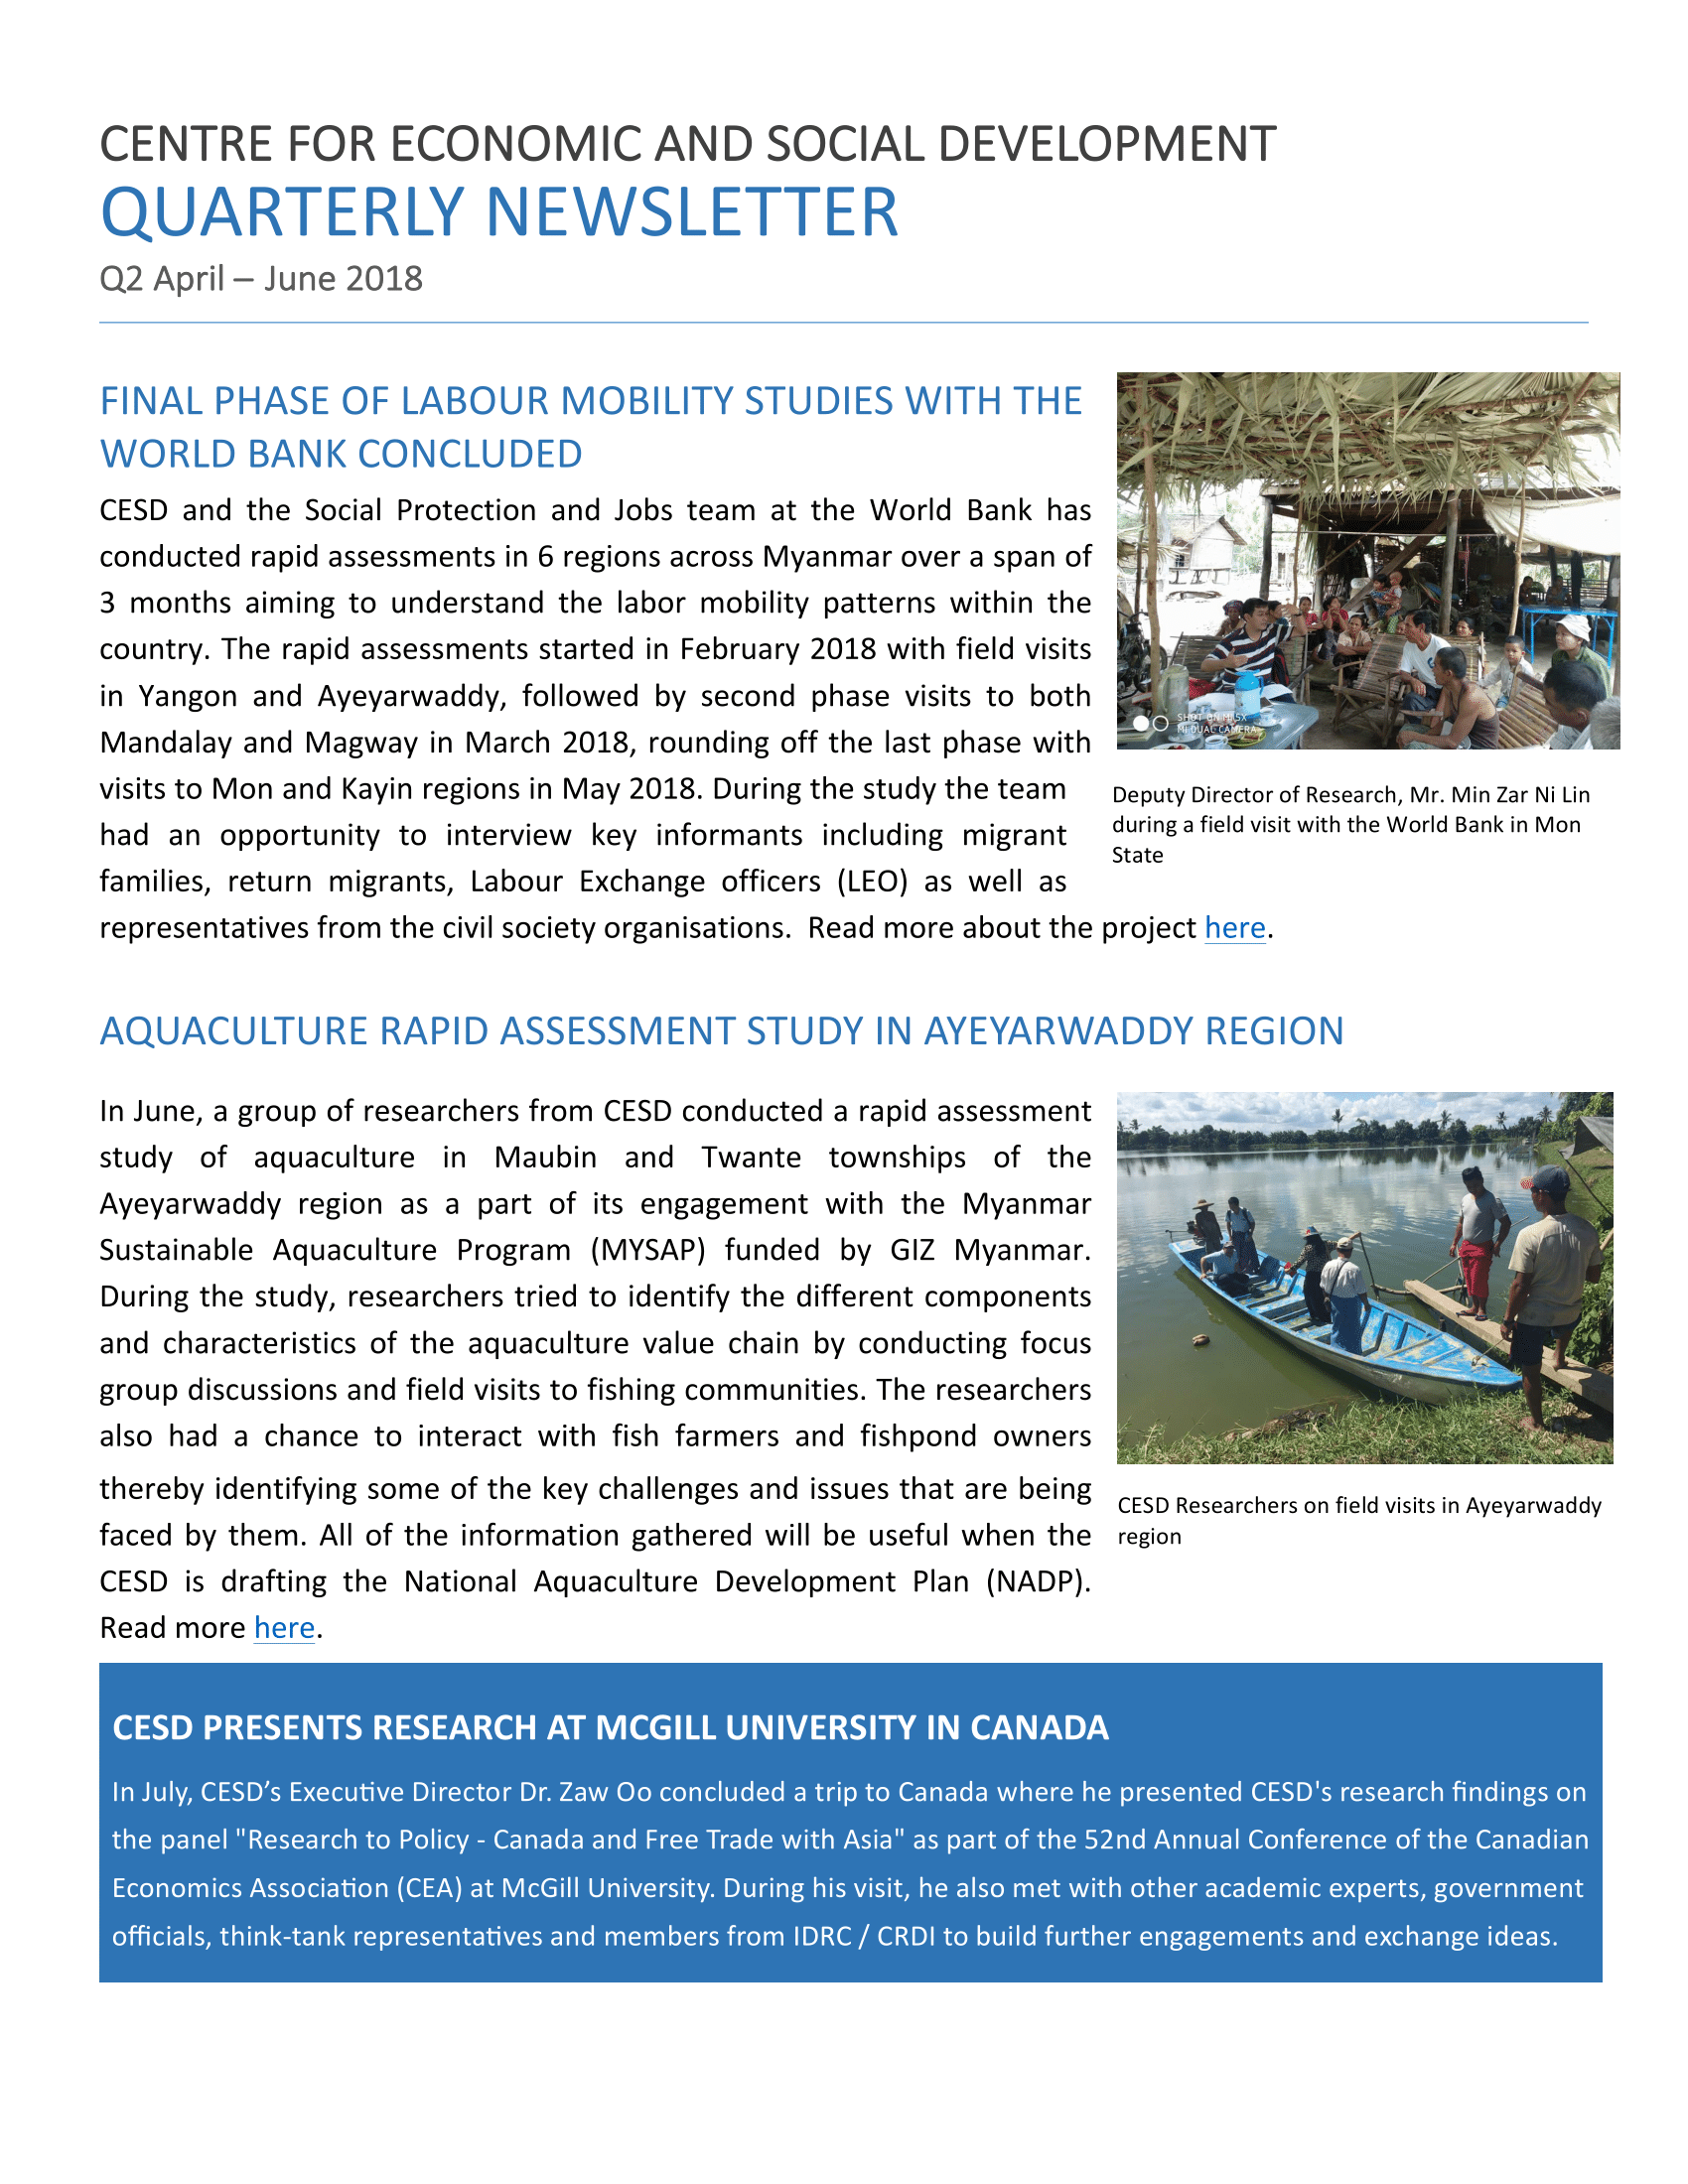 Preview CESD Newsletter Q2 2018